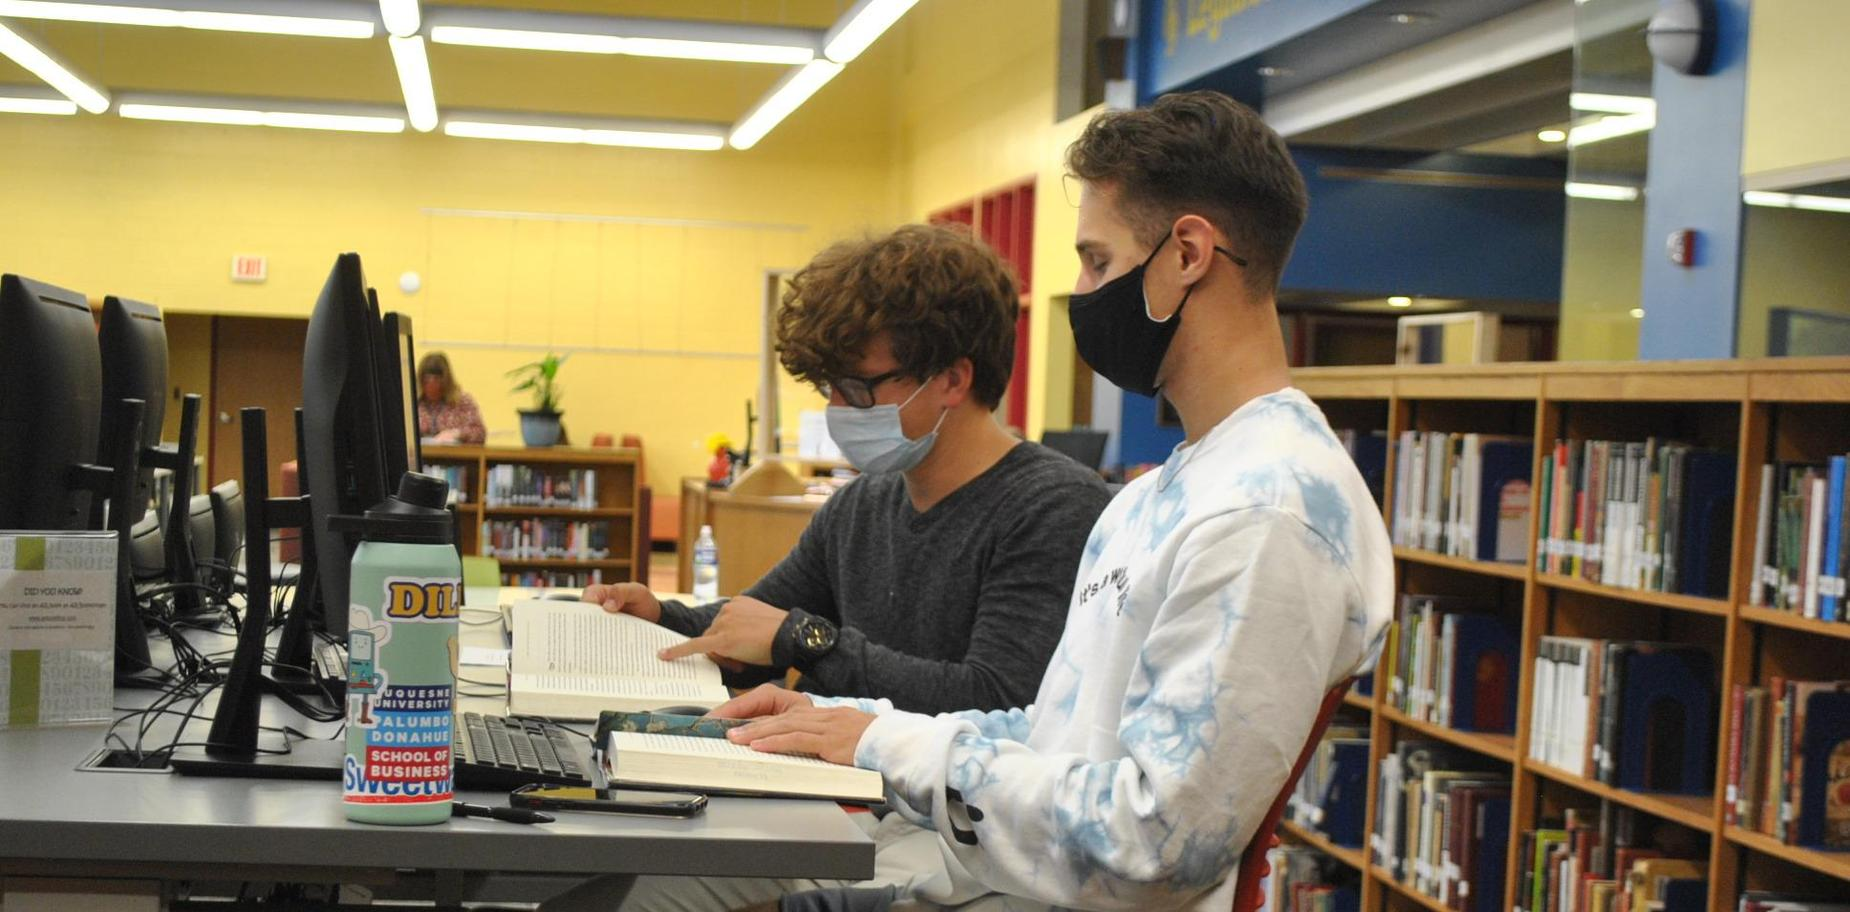 students working at computer